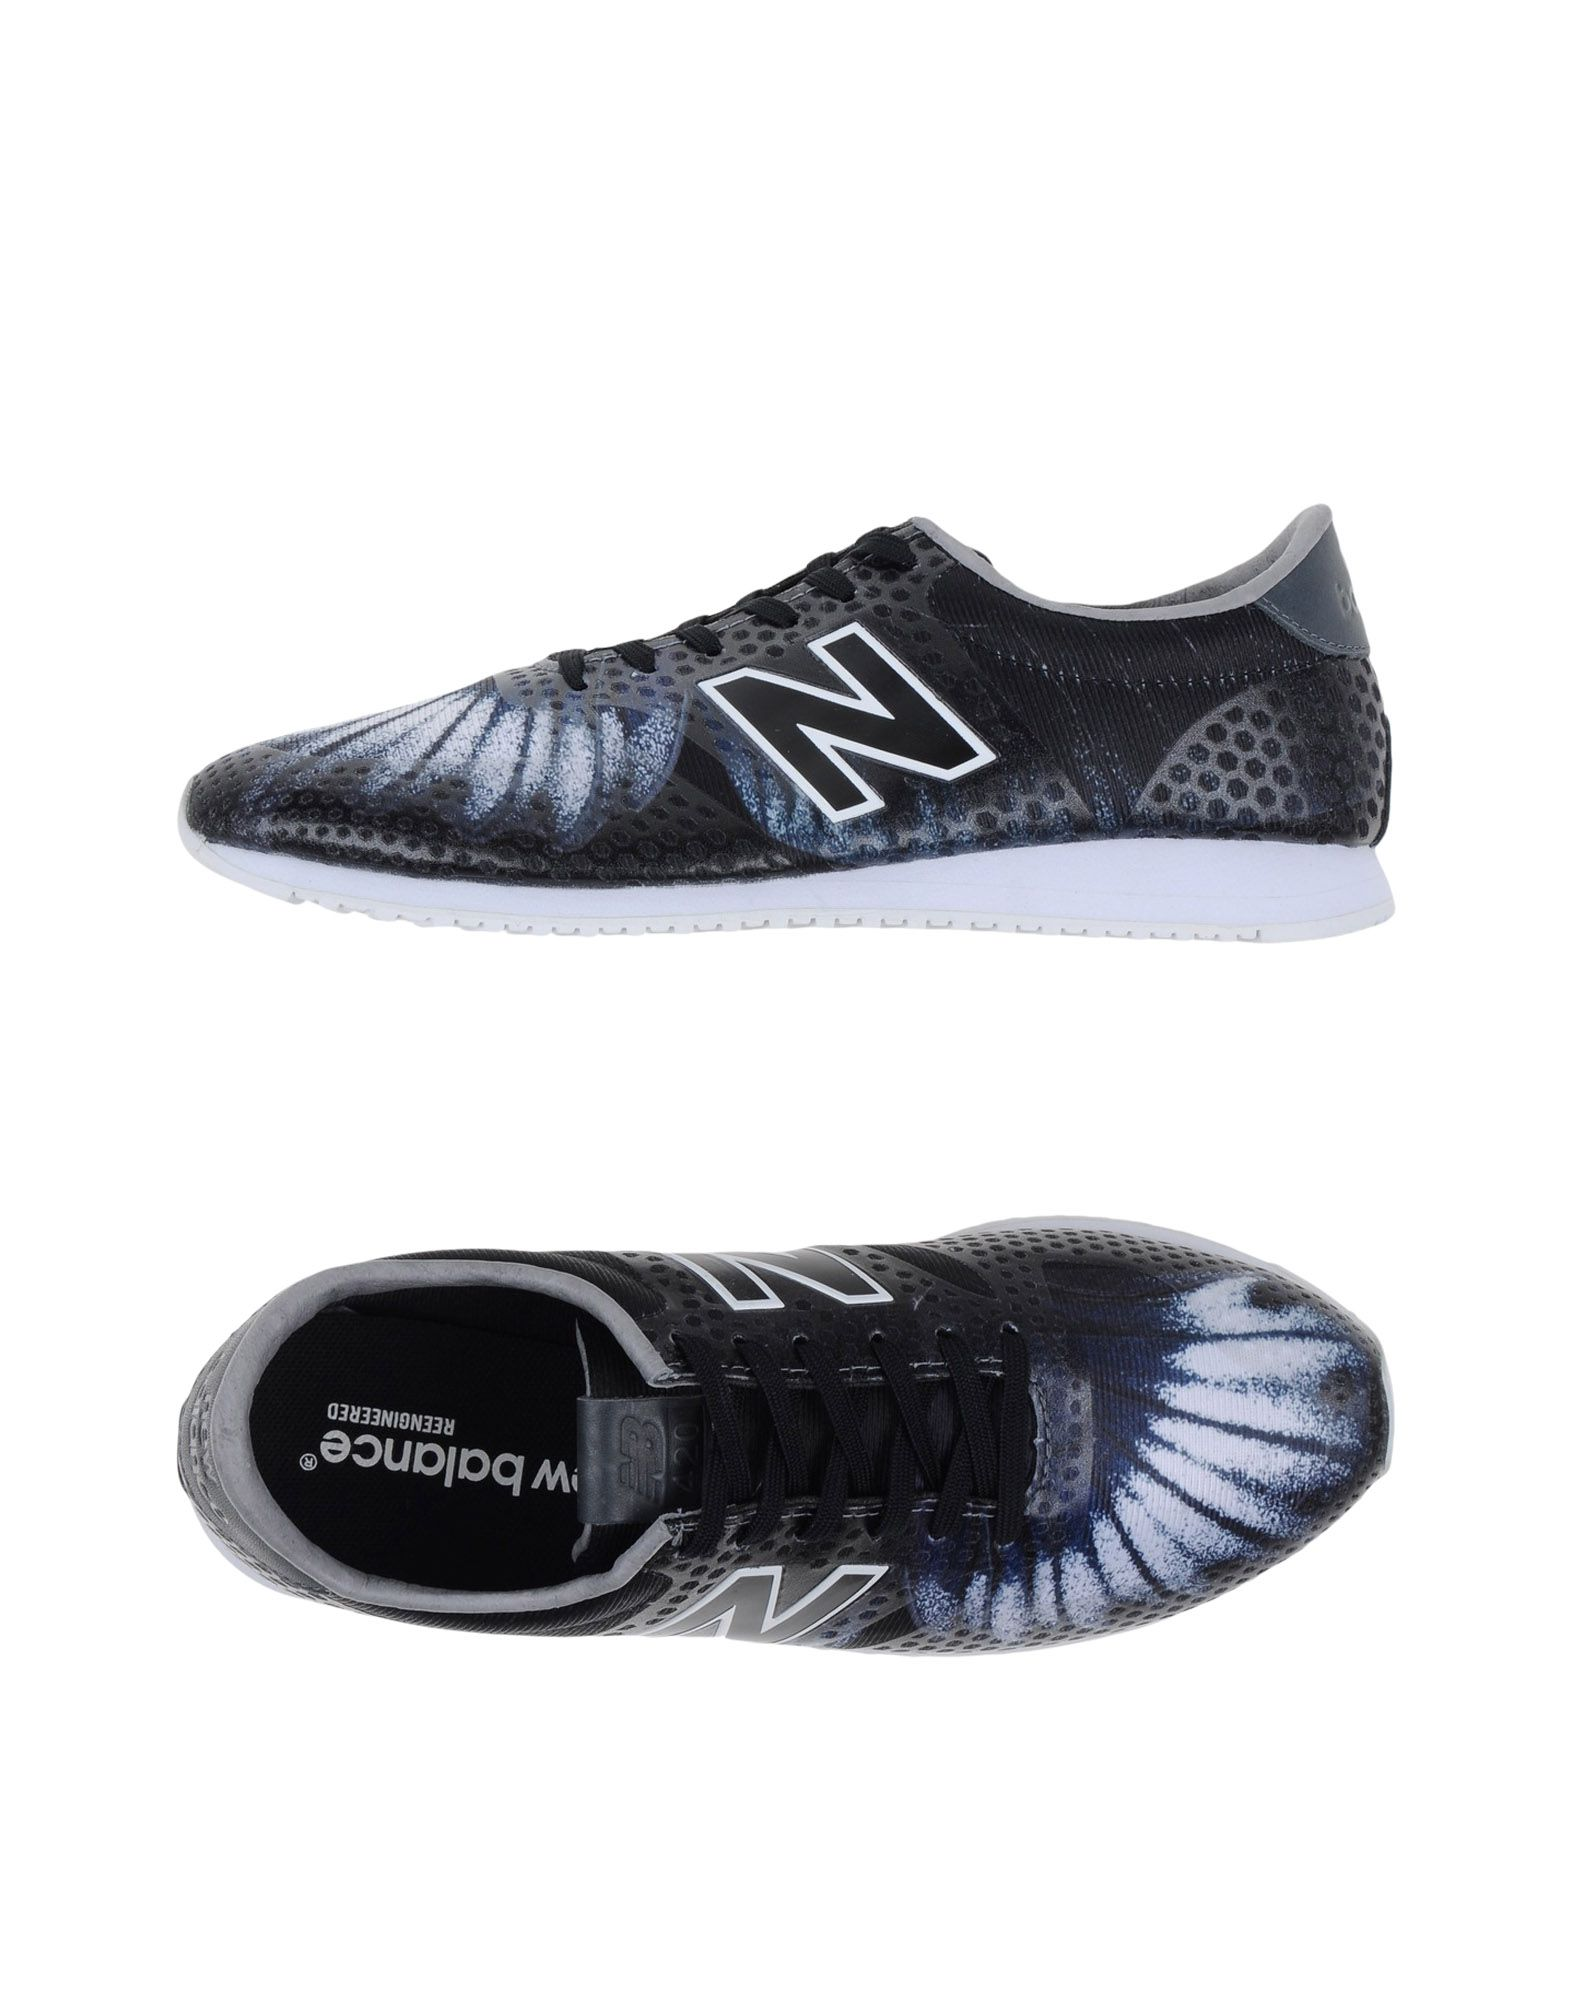 Sneakers New Balance 420 Butterfly - Femme - Sneakers New Balance sur